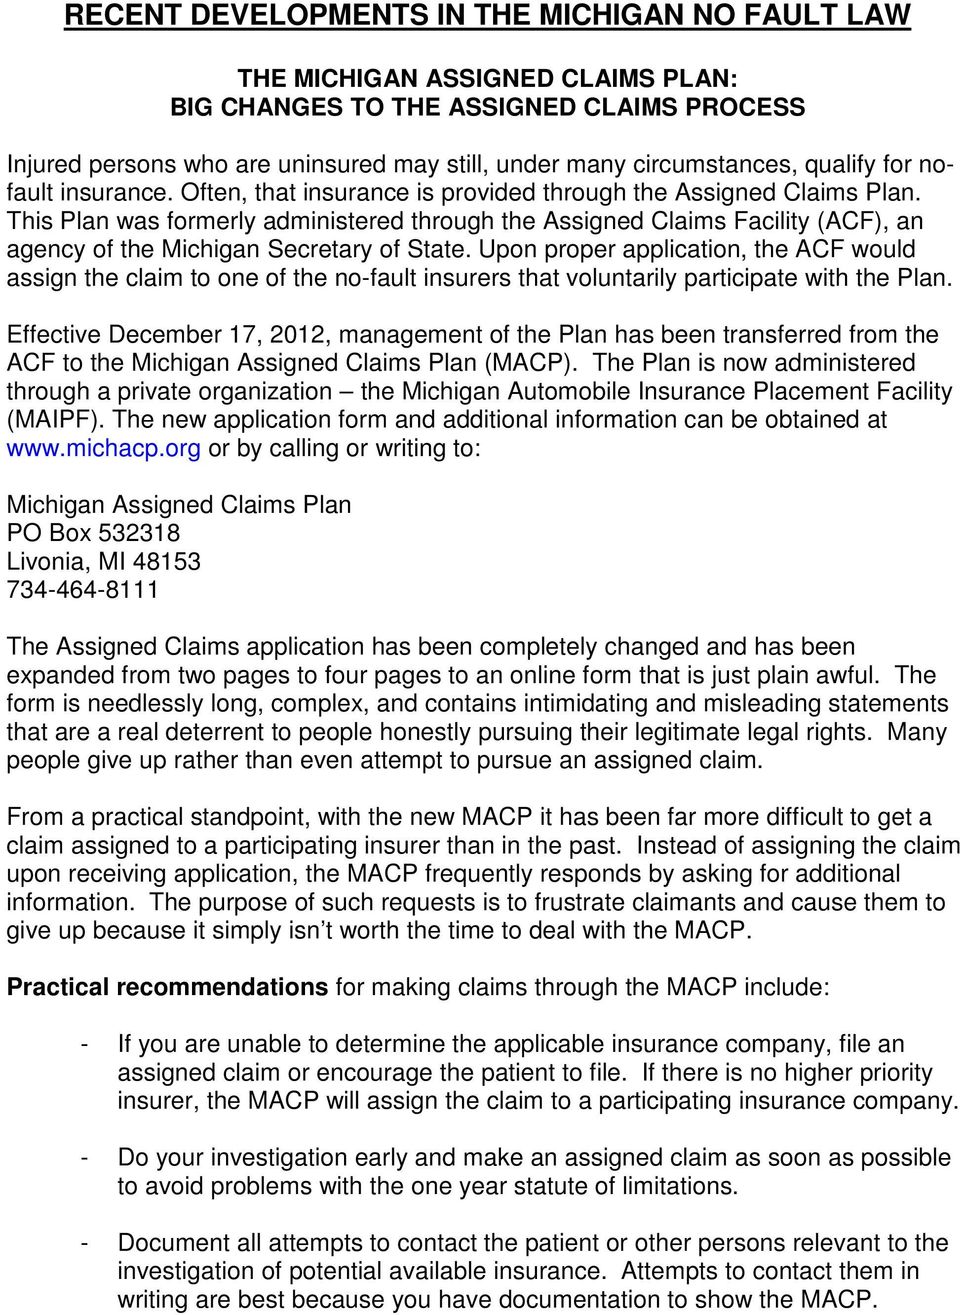 This Plan was formerly administered through the Assigned Claims Facility (ACF), an agency of the Michigan Secretary of State.